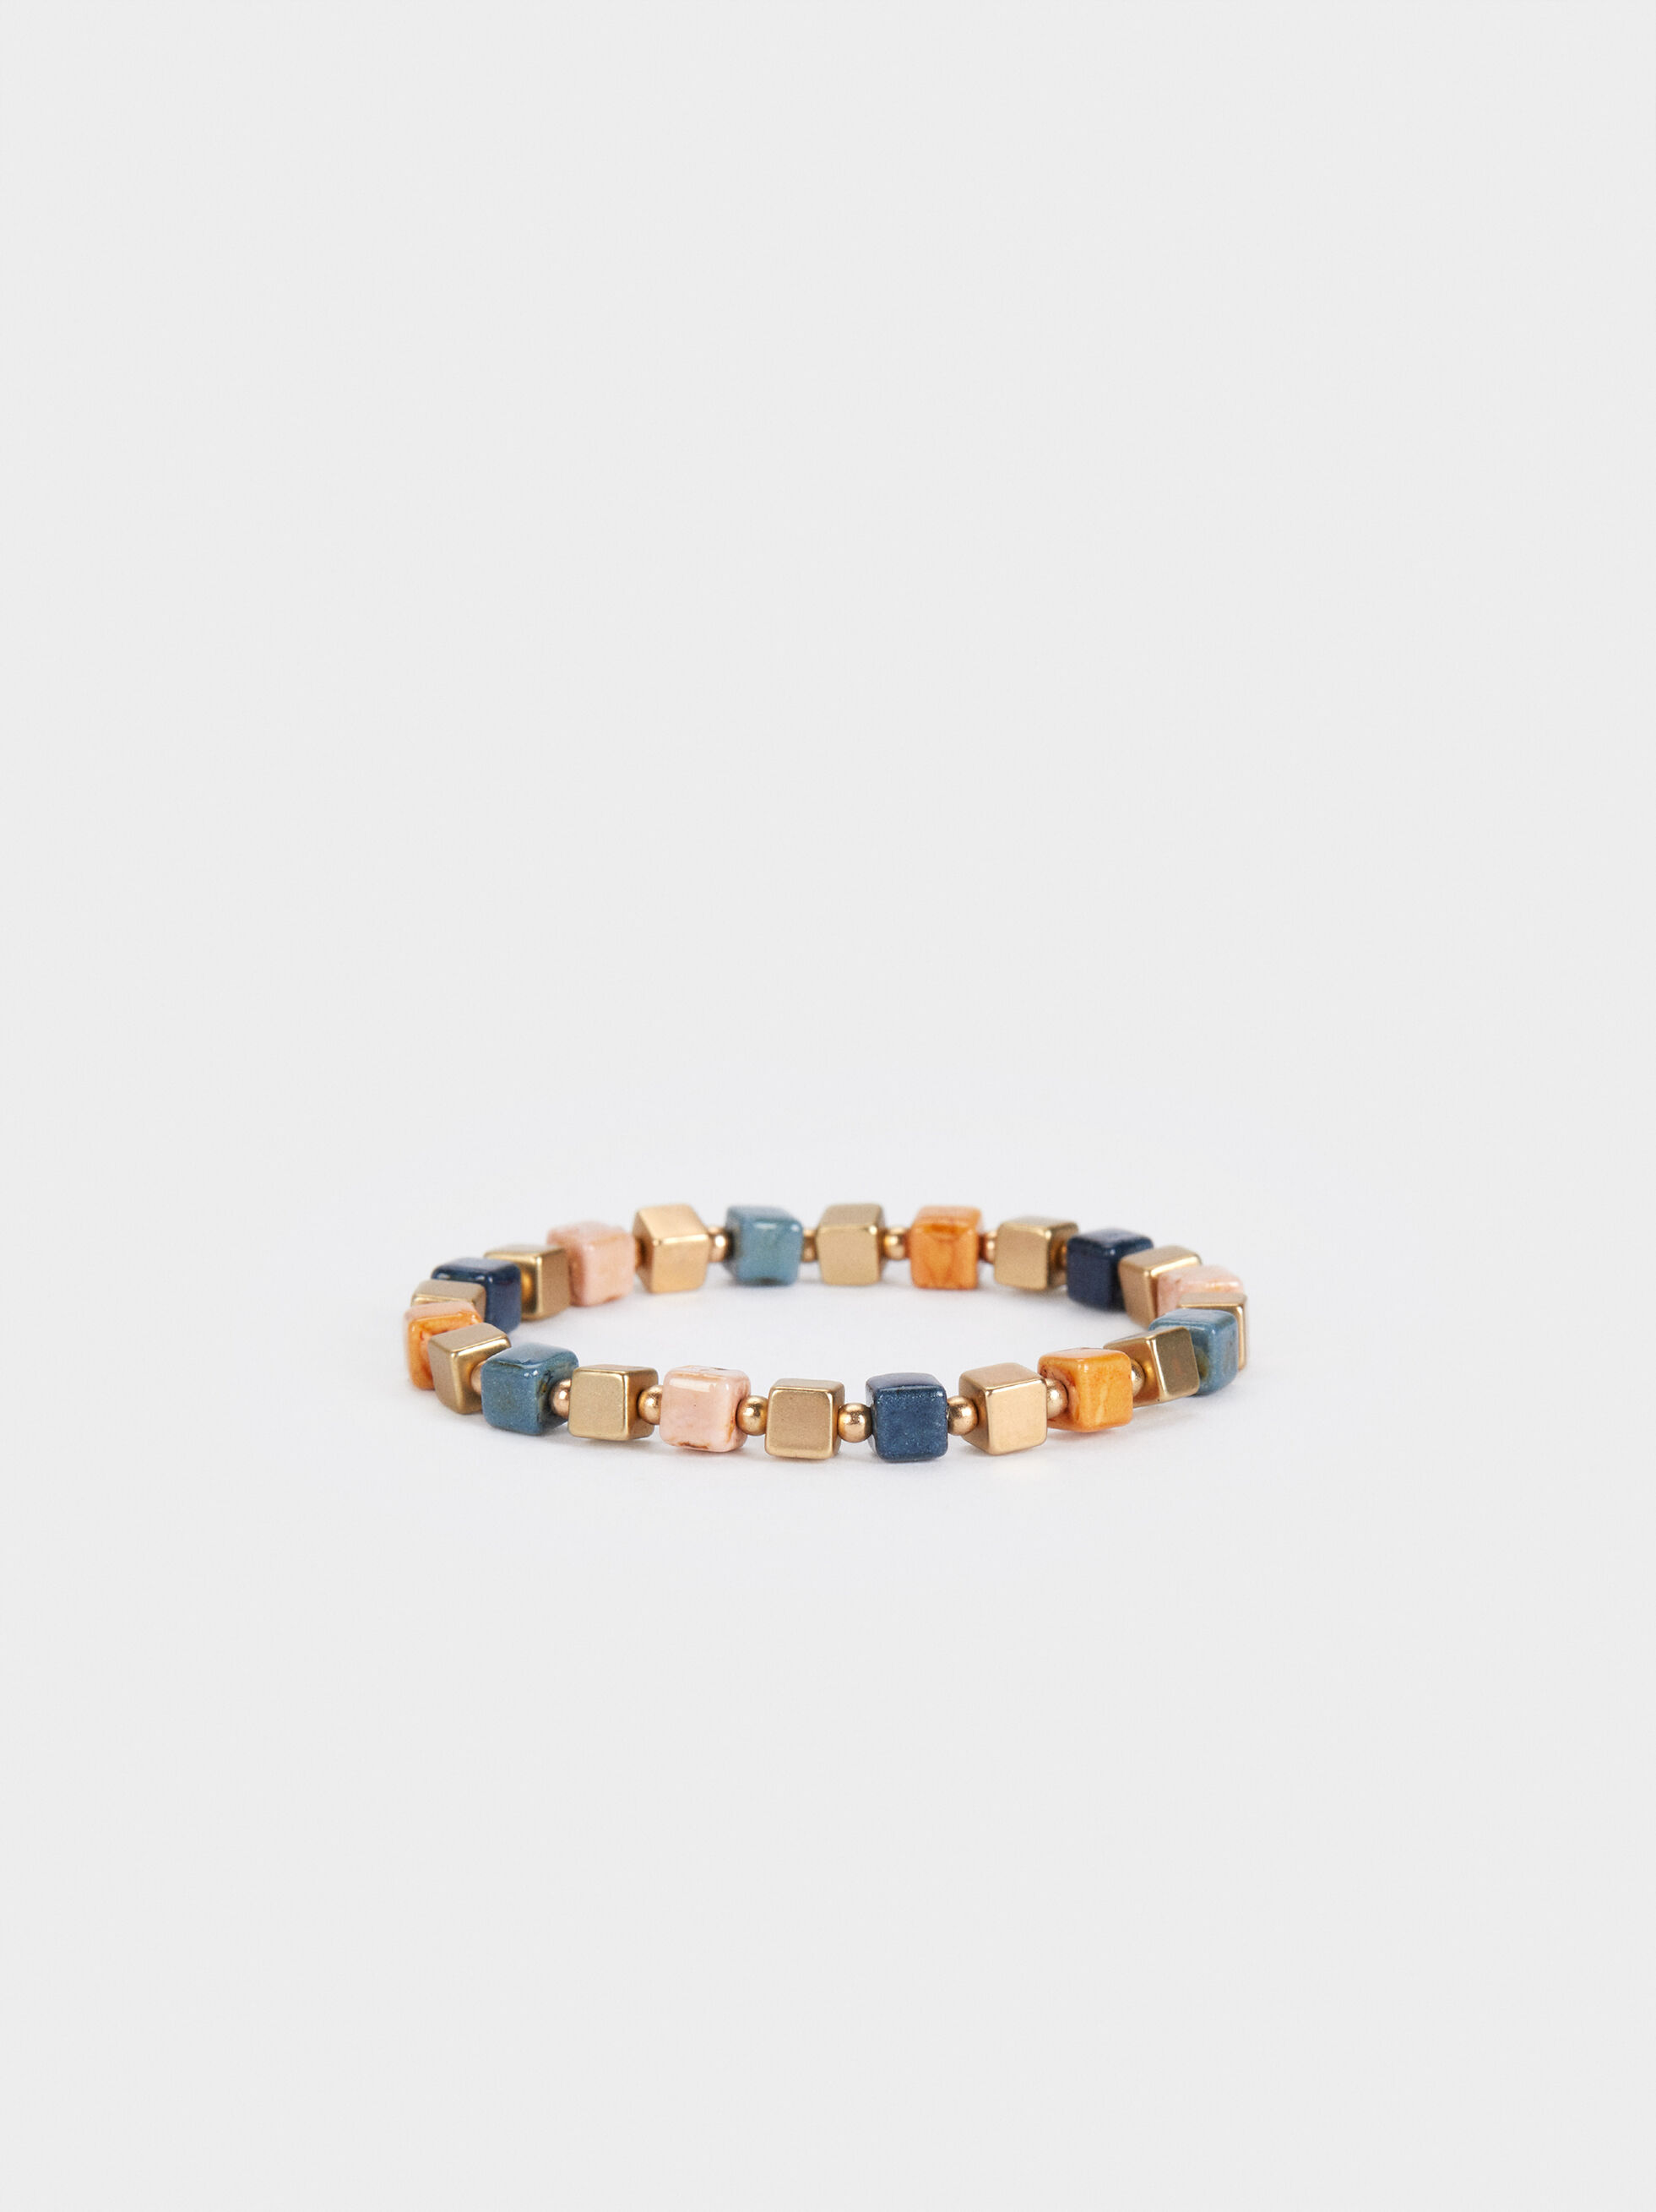 Gold Elasticated Bracelet With Gems, Multicolor, hi-res